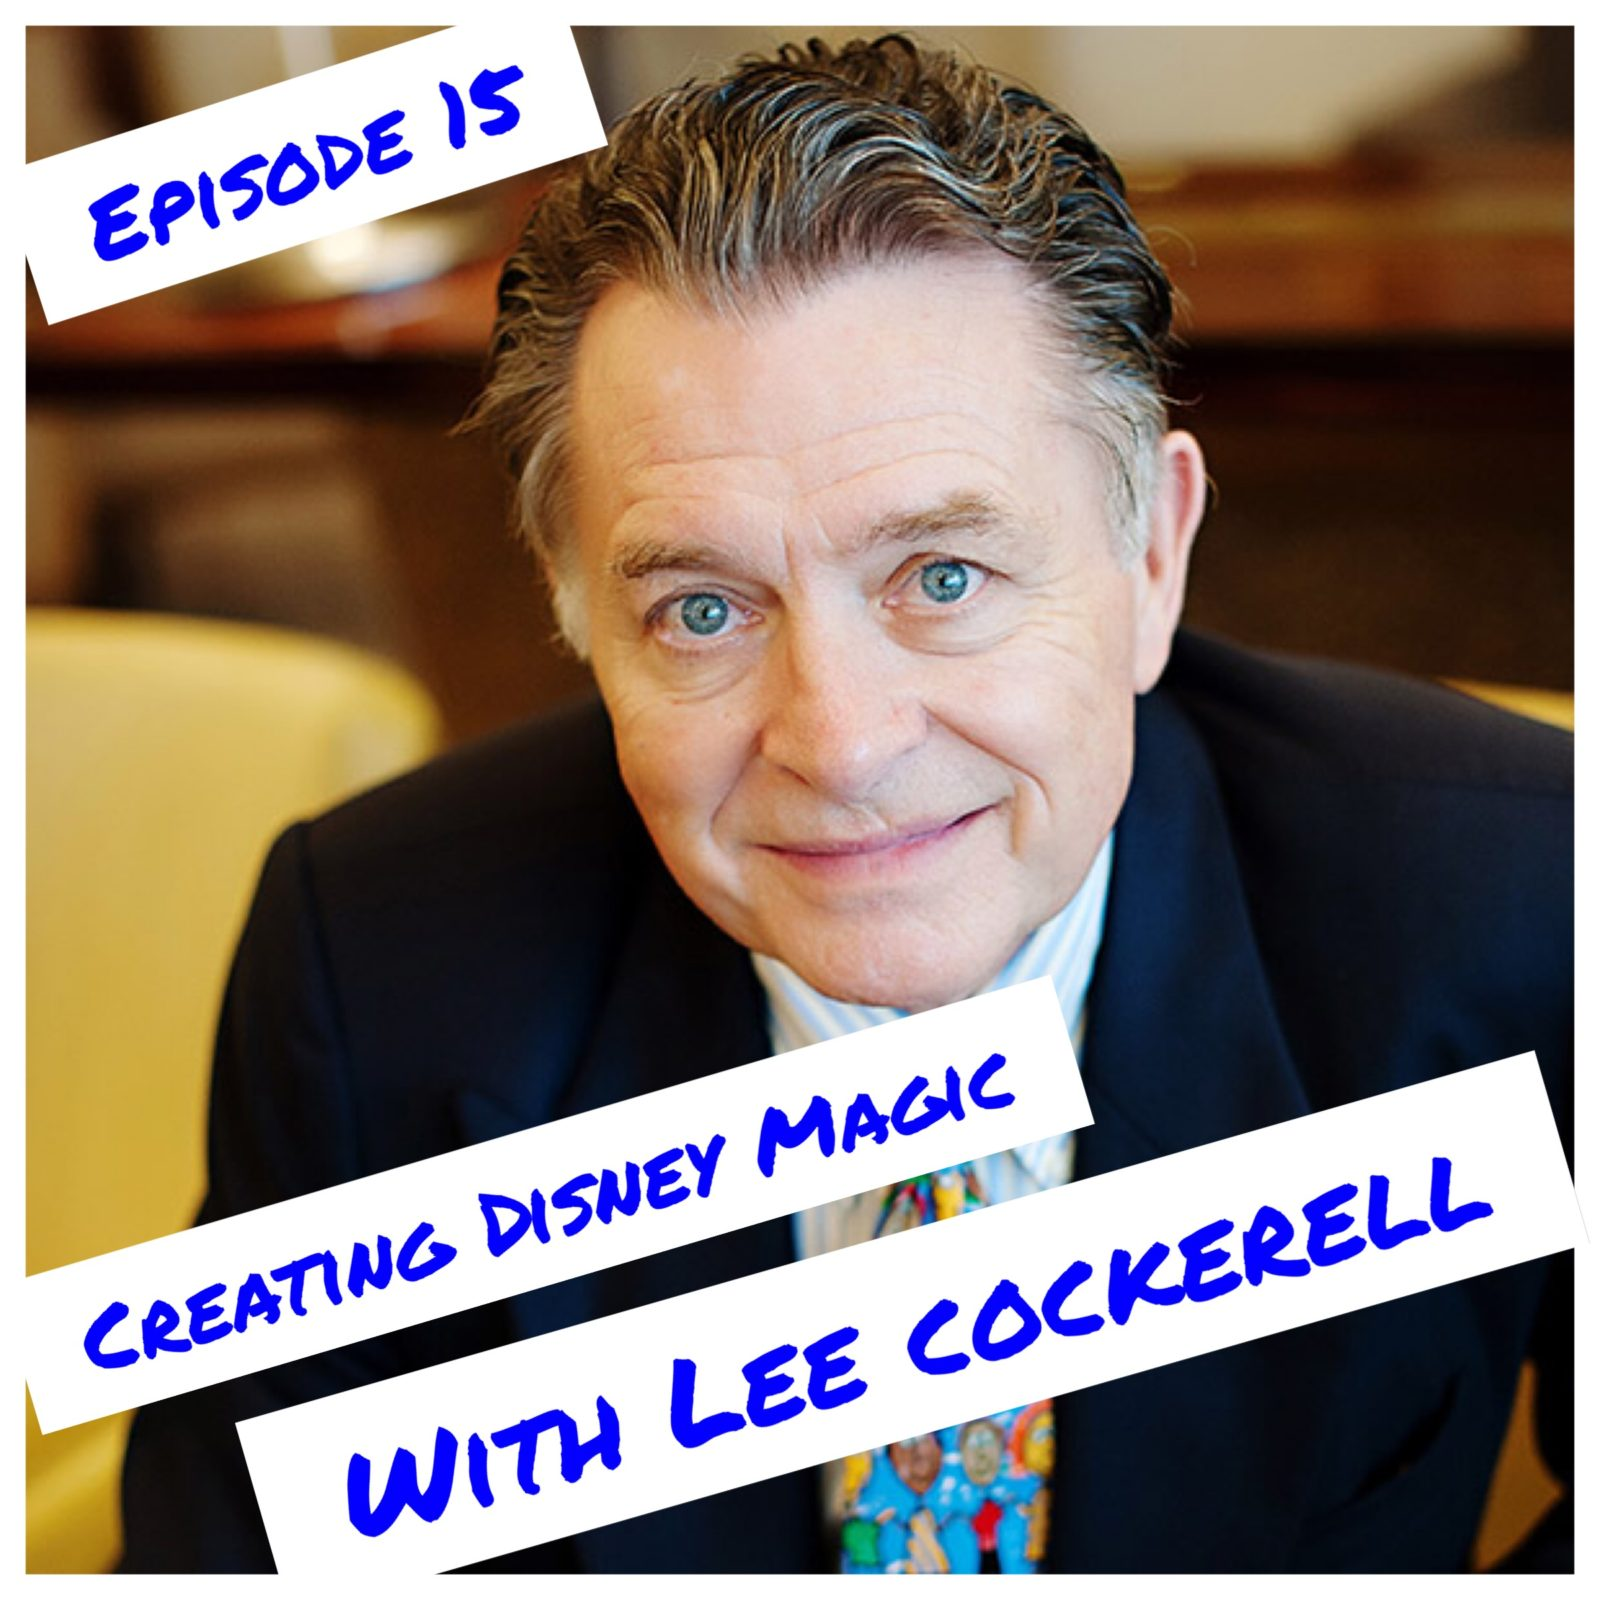 Episode 15 - Lee Cockerell